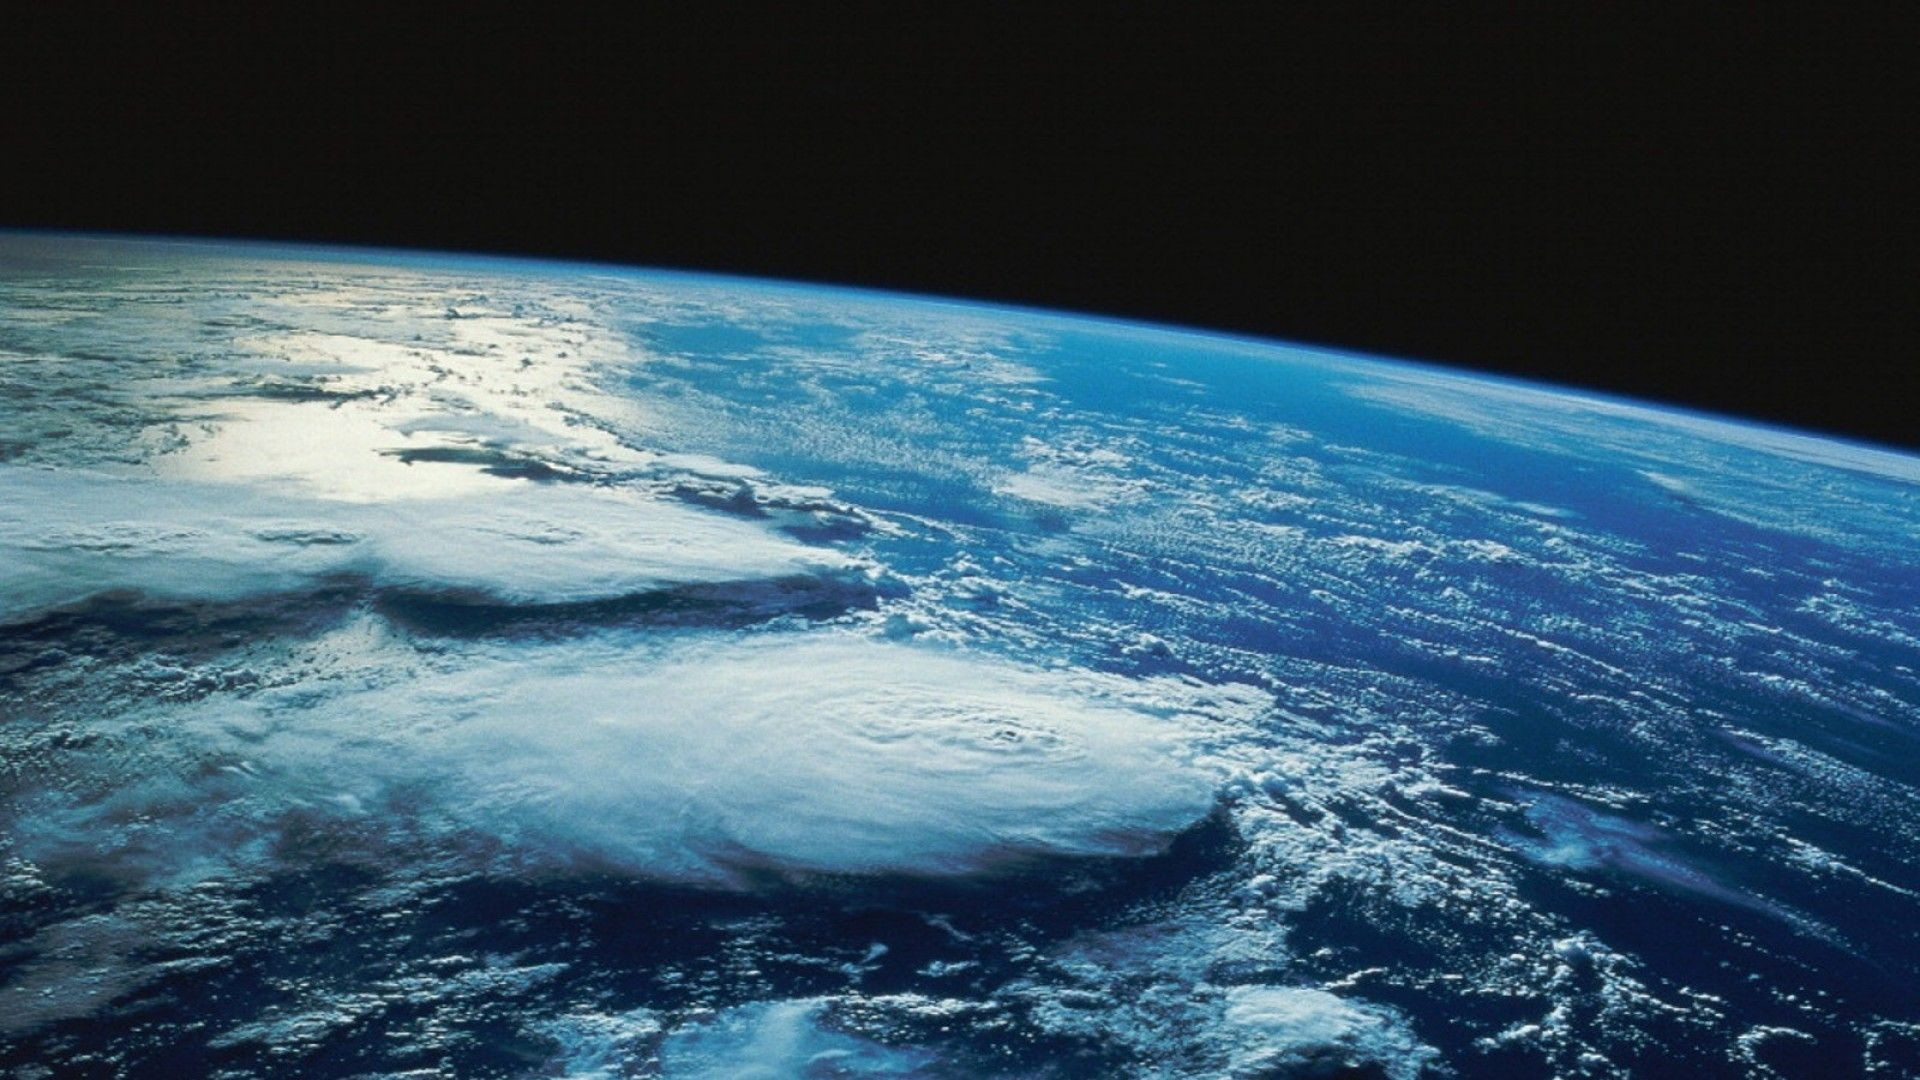 High Resolution Awesome Planet Earth Wallpaper HD 15 Full Size .